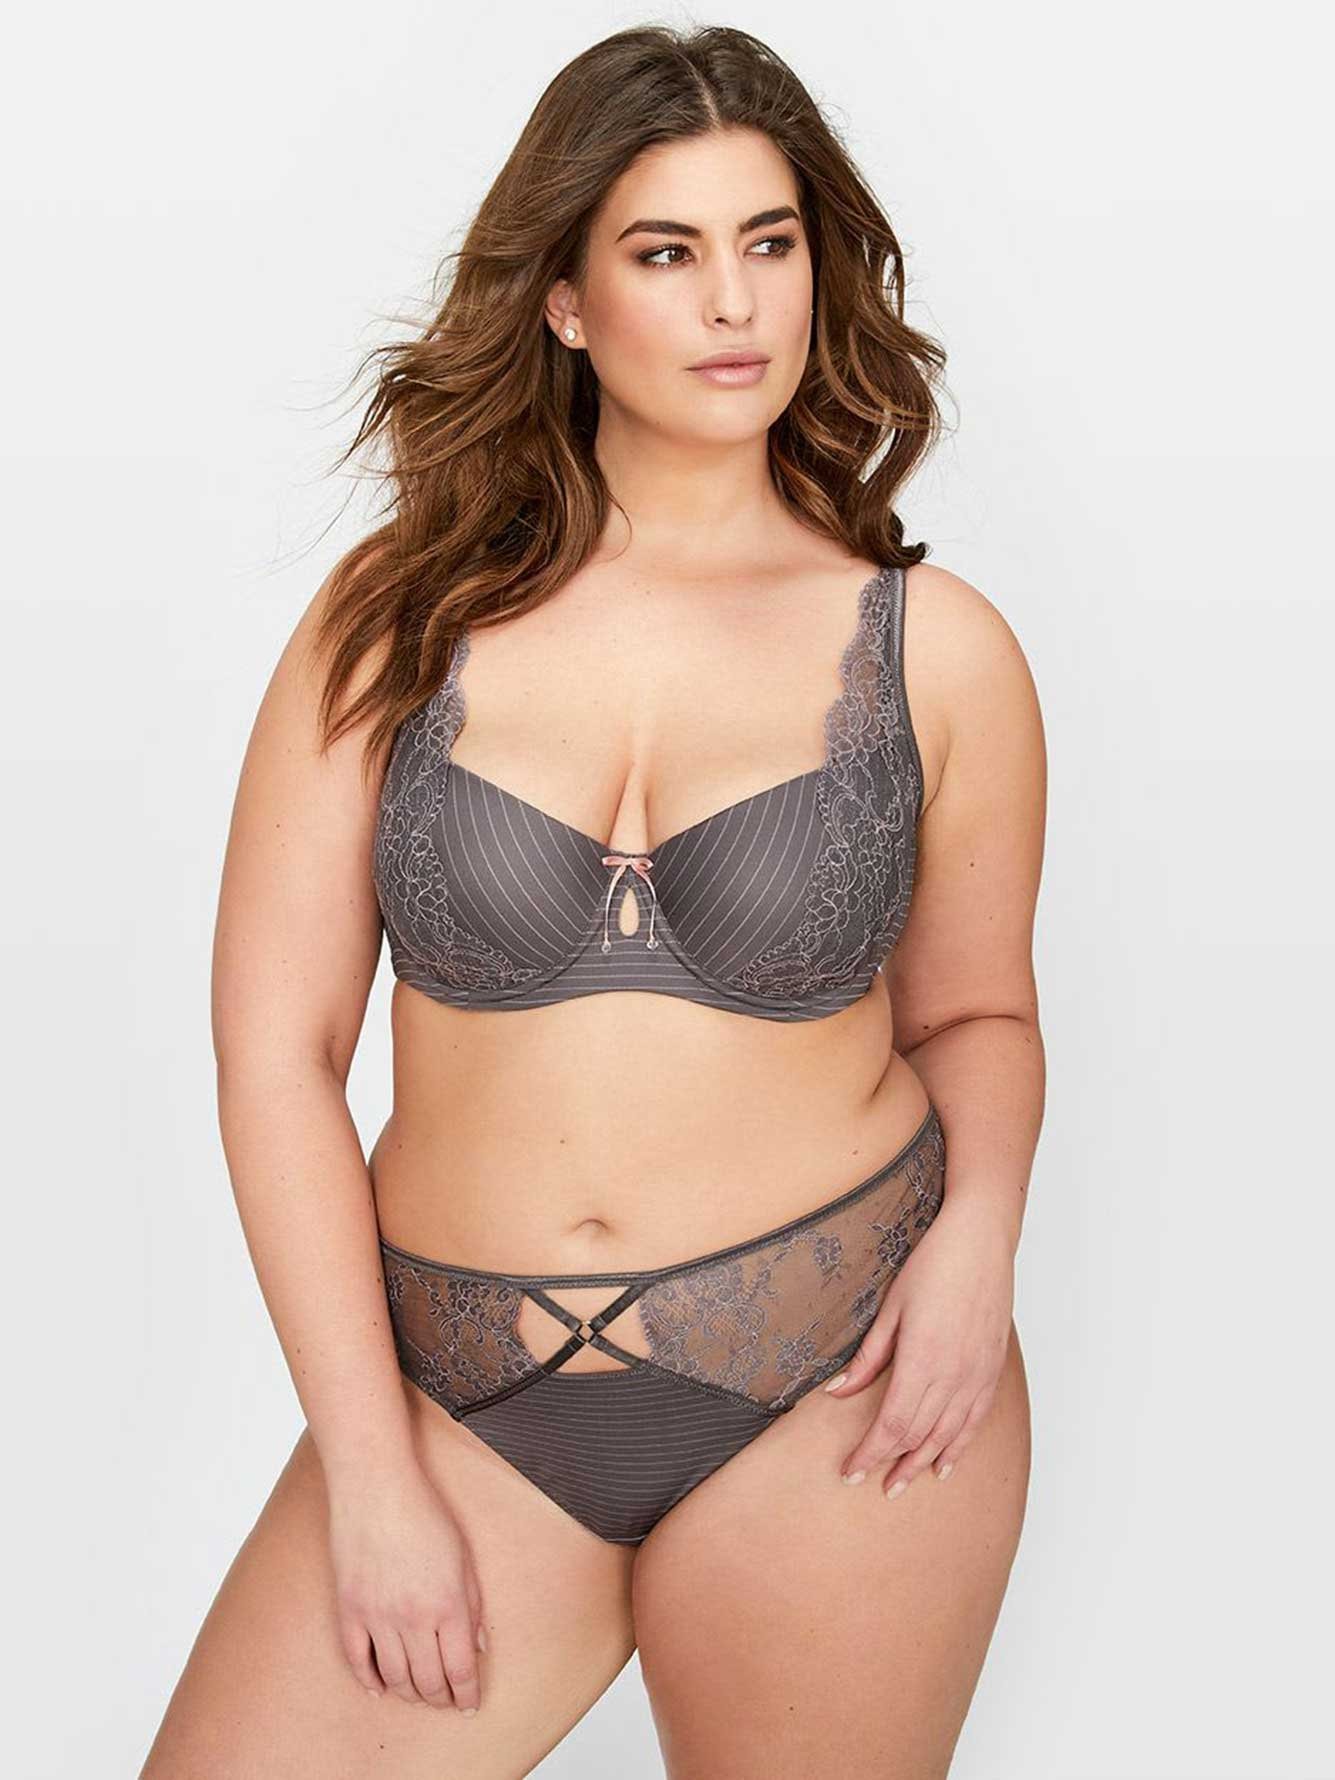 f8cc5532c2 Ashley Graham Lace and Striped Diva Bra